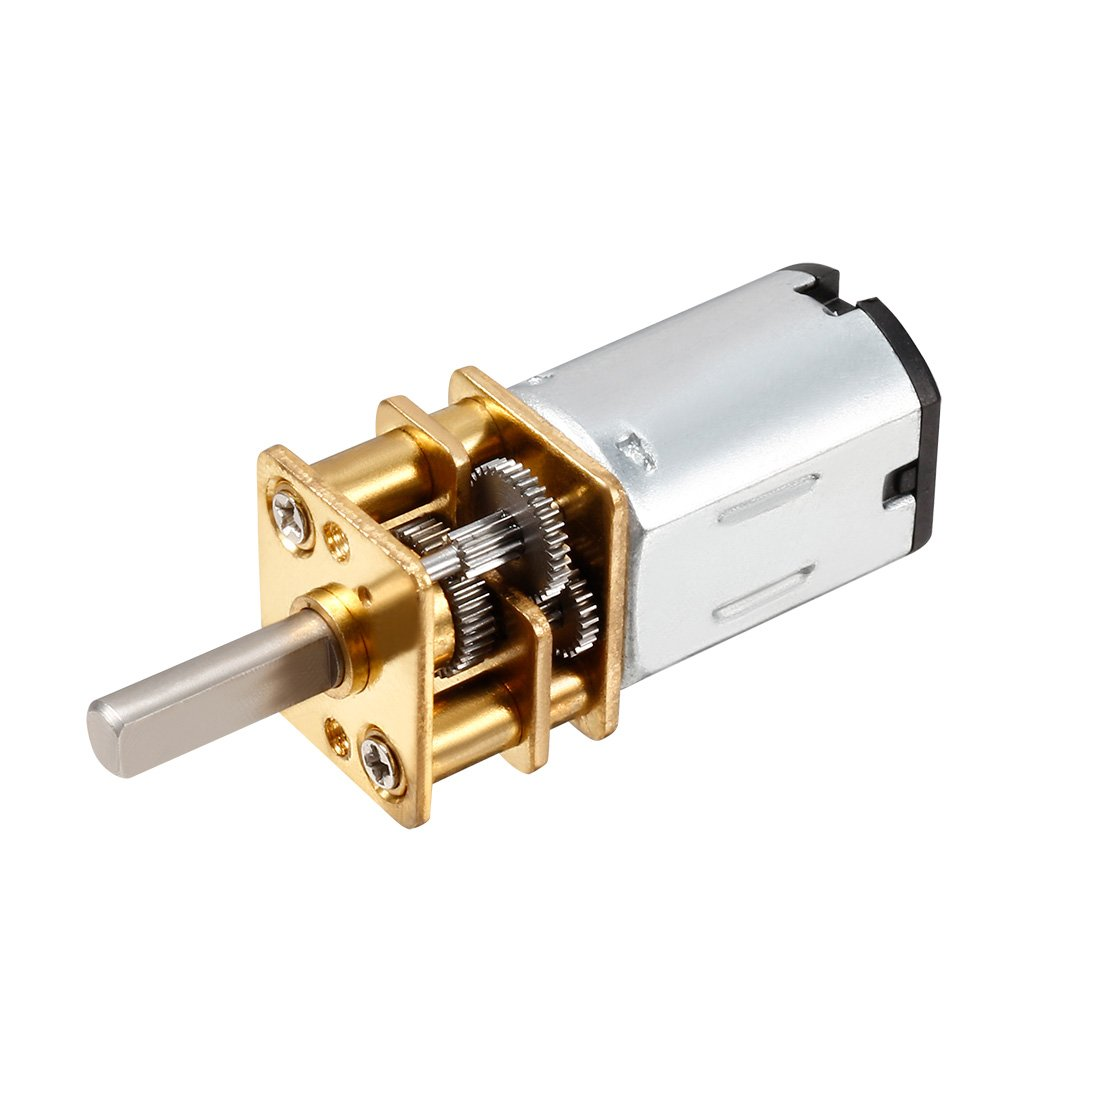 100RPM DC 6V 2 Terminal Gear Electric Speed Reduce Micro Motor Sourcingmap a13110700ux0220